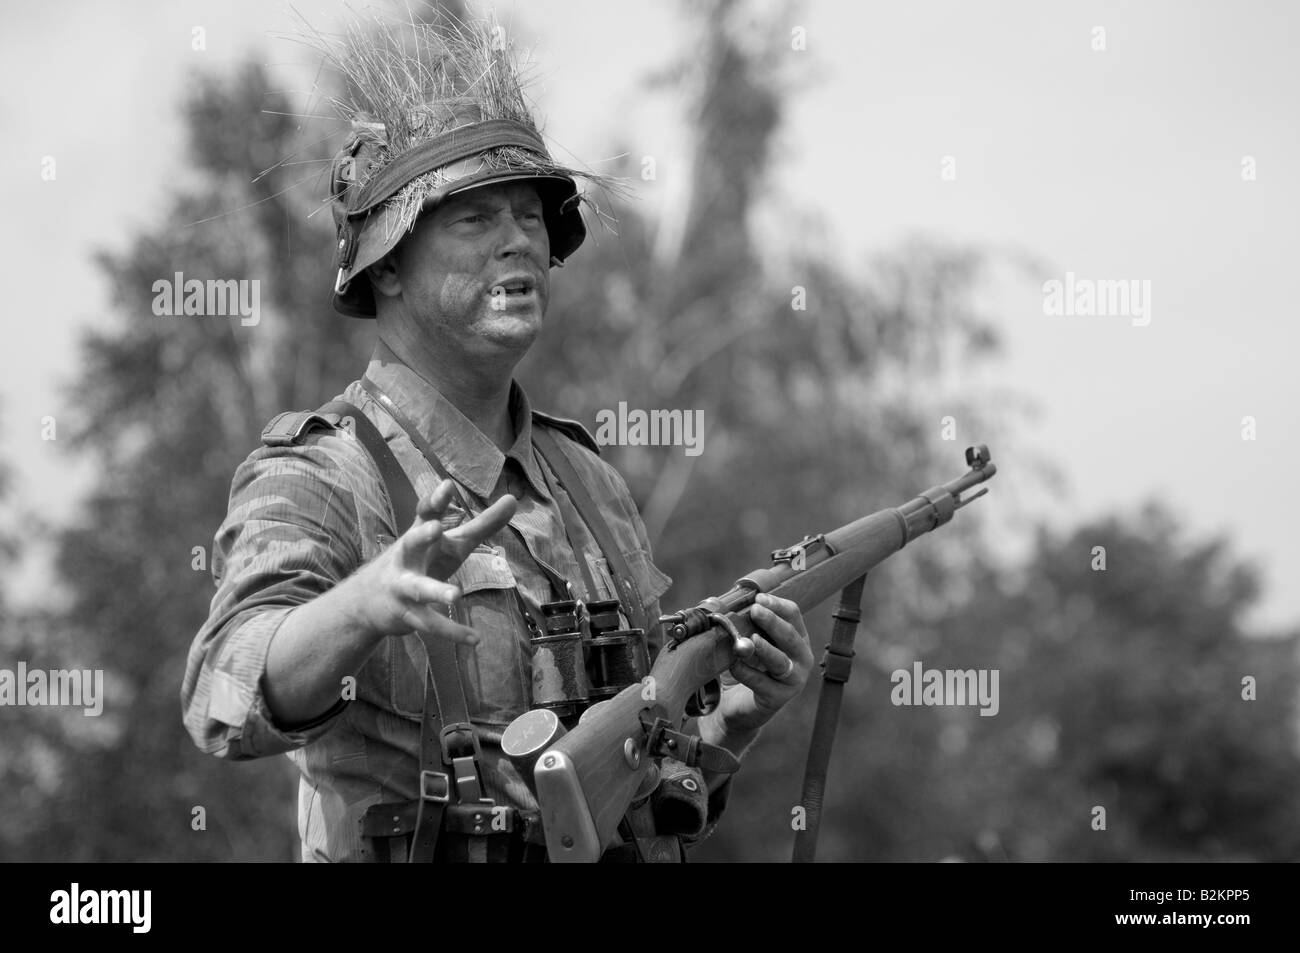 A German army Unteroffizier giving ad hoc training for field tactics to new troops - Stock Image